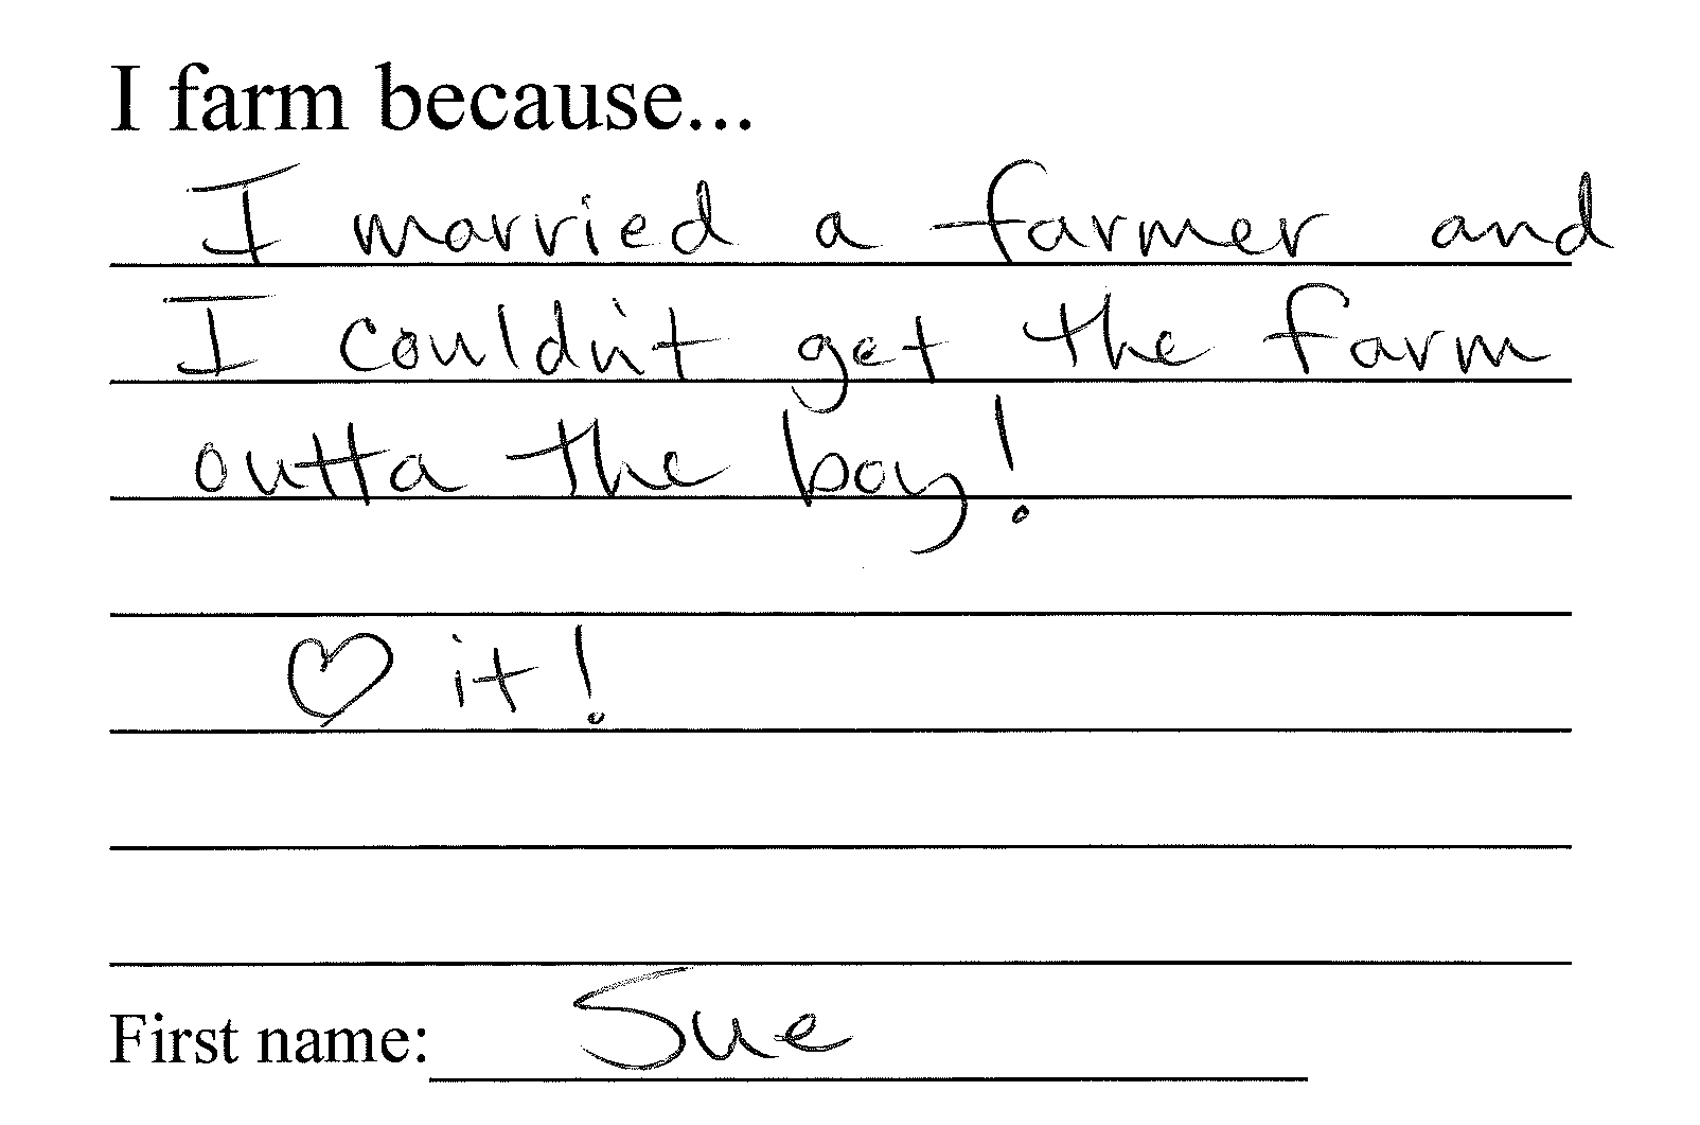 Sue shares why she farms